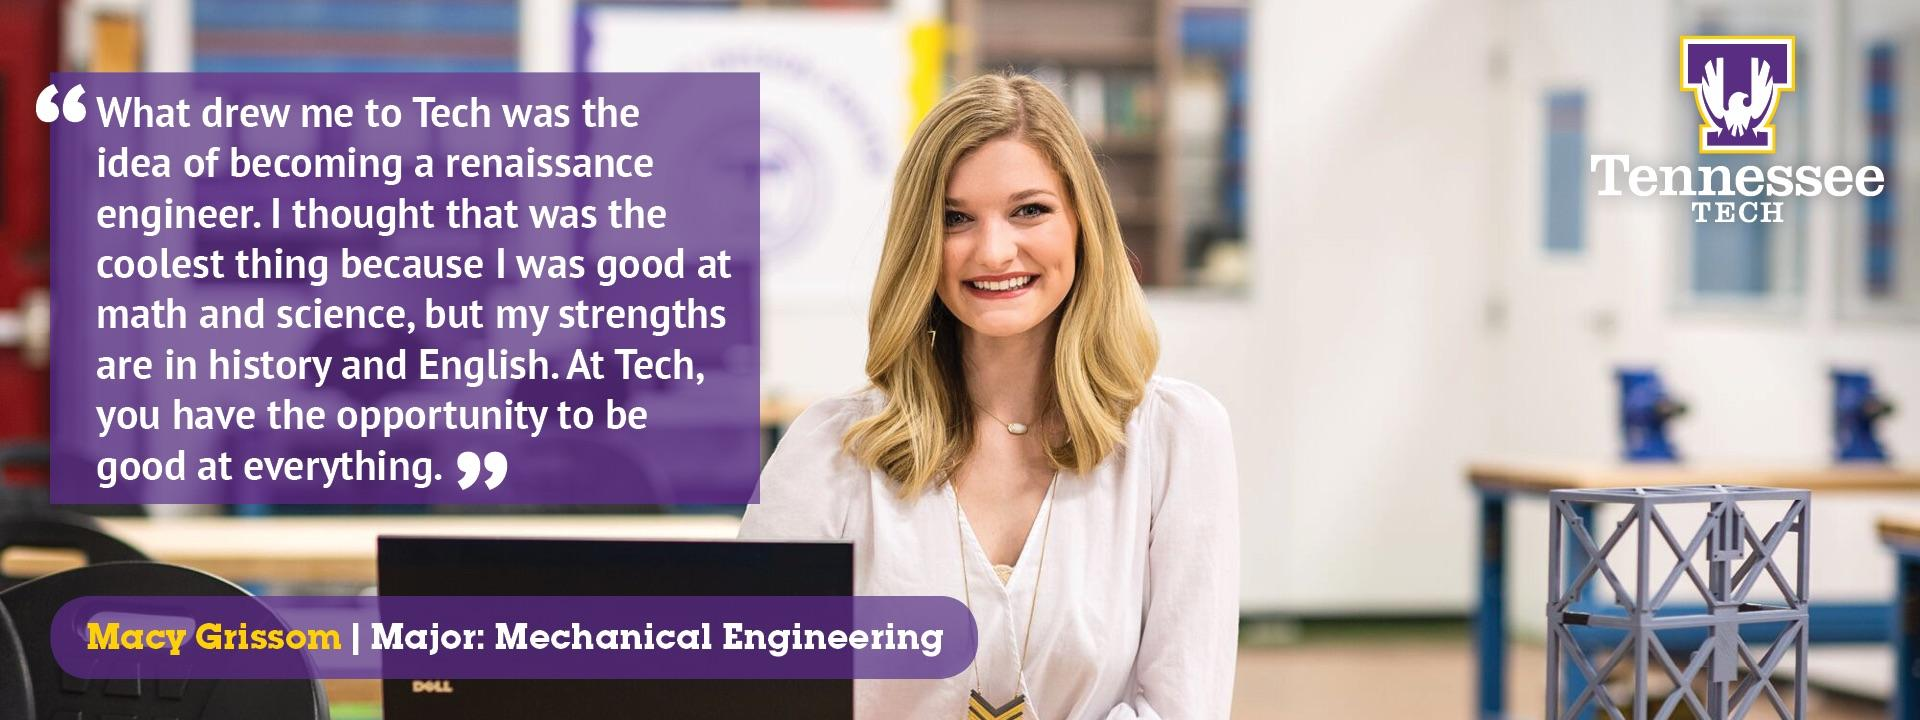 Testimonial by Macy Grissom, Mechanical Engineering